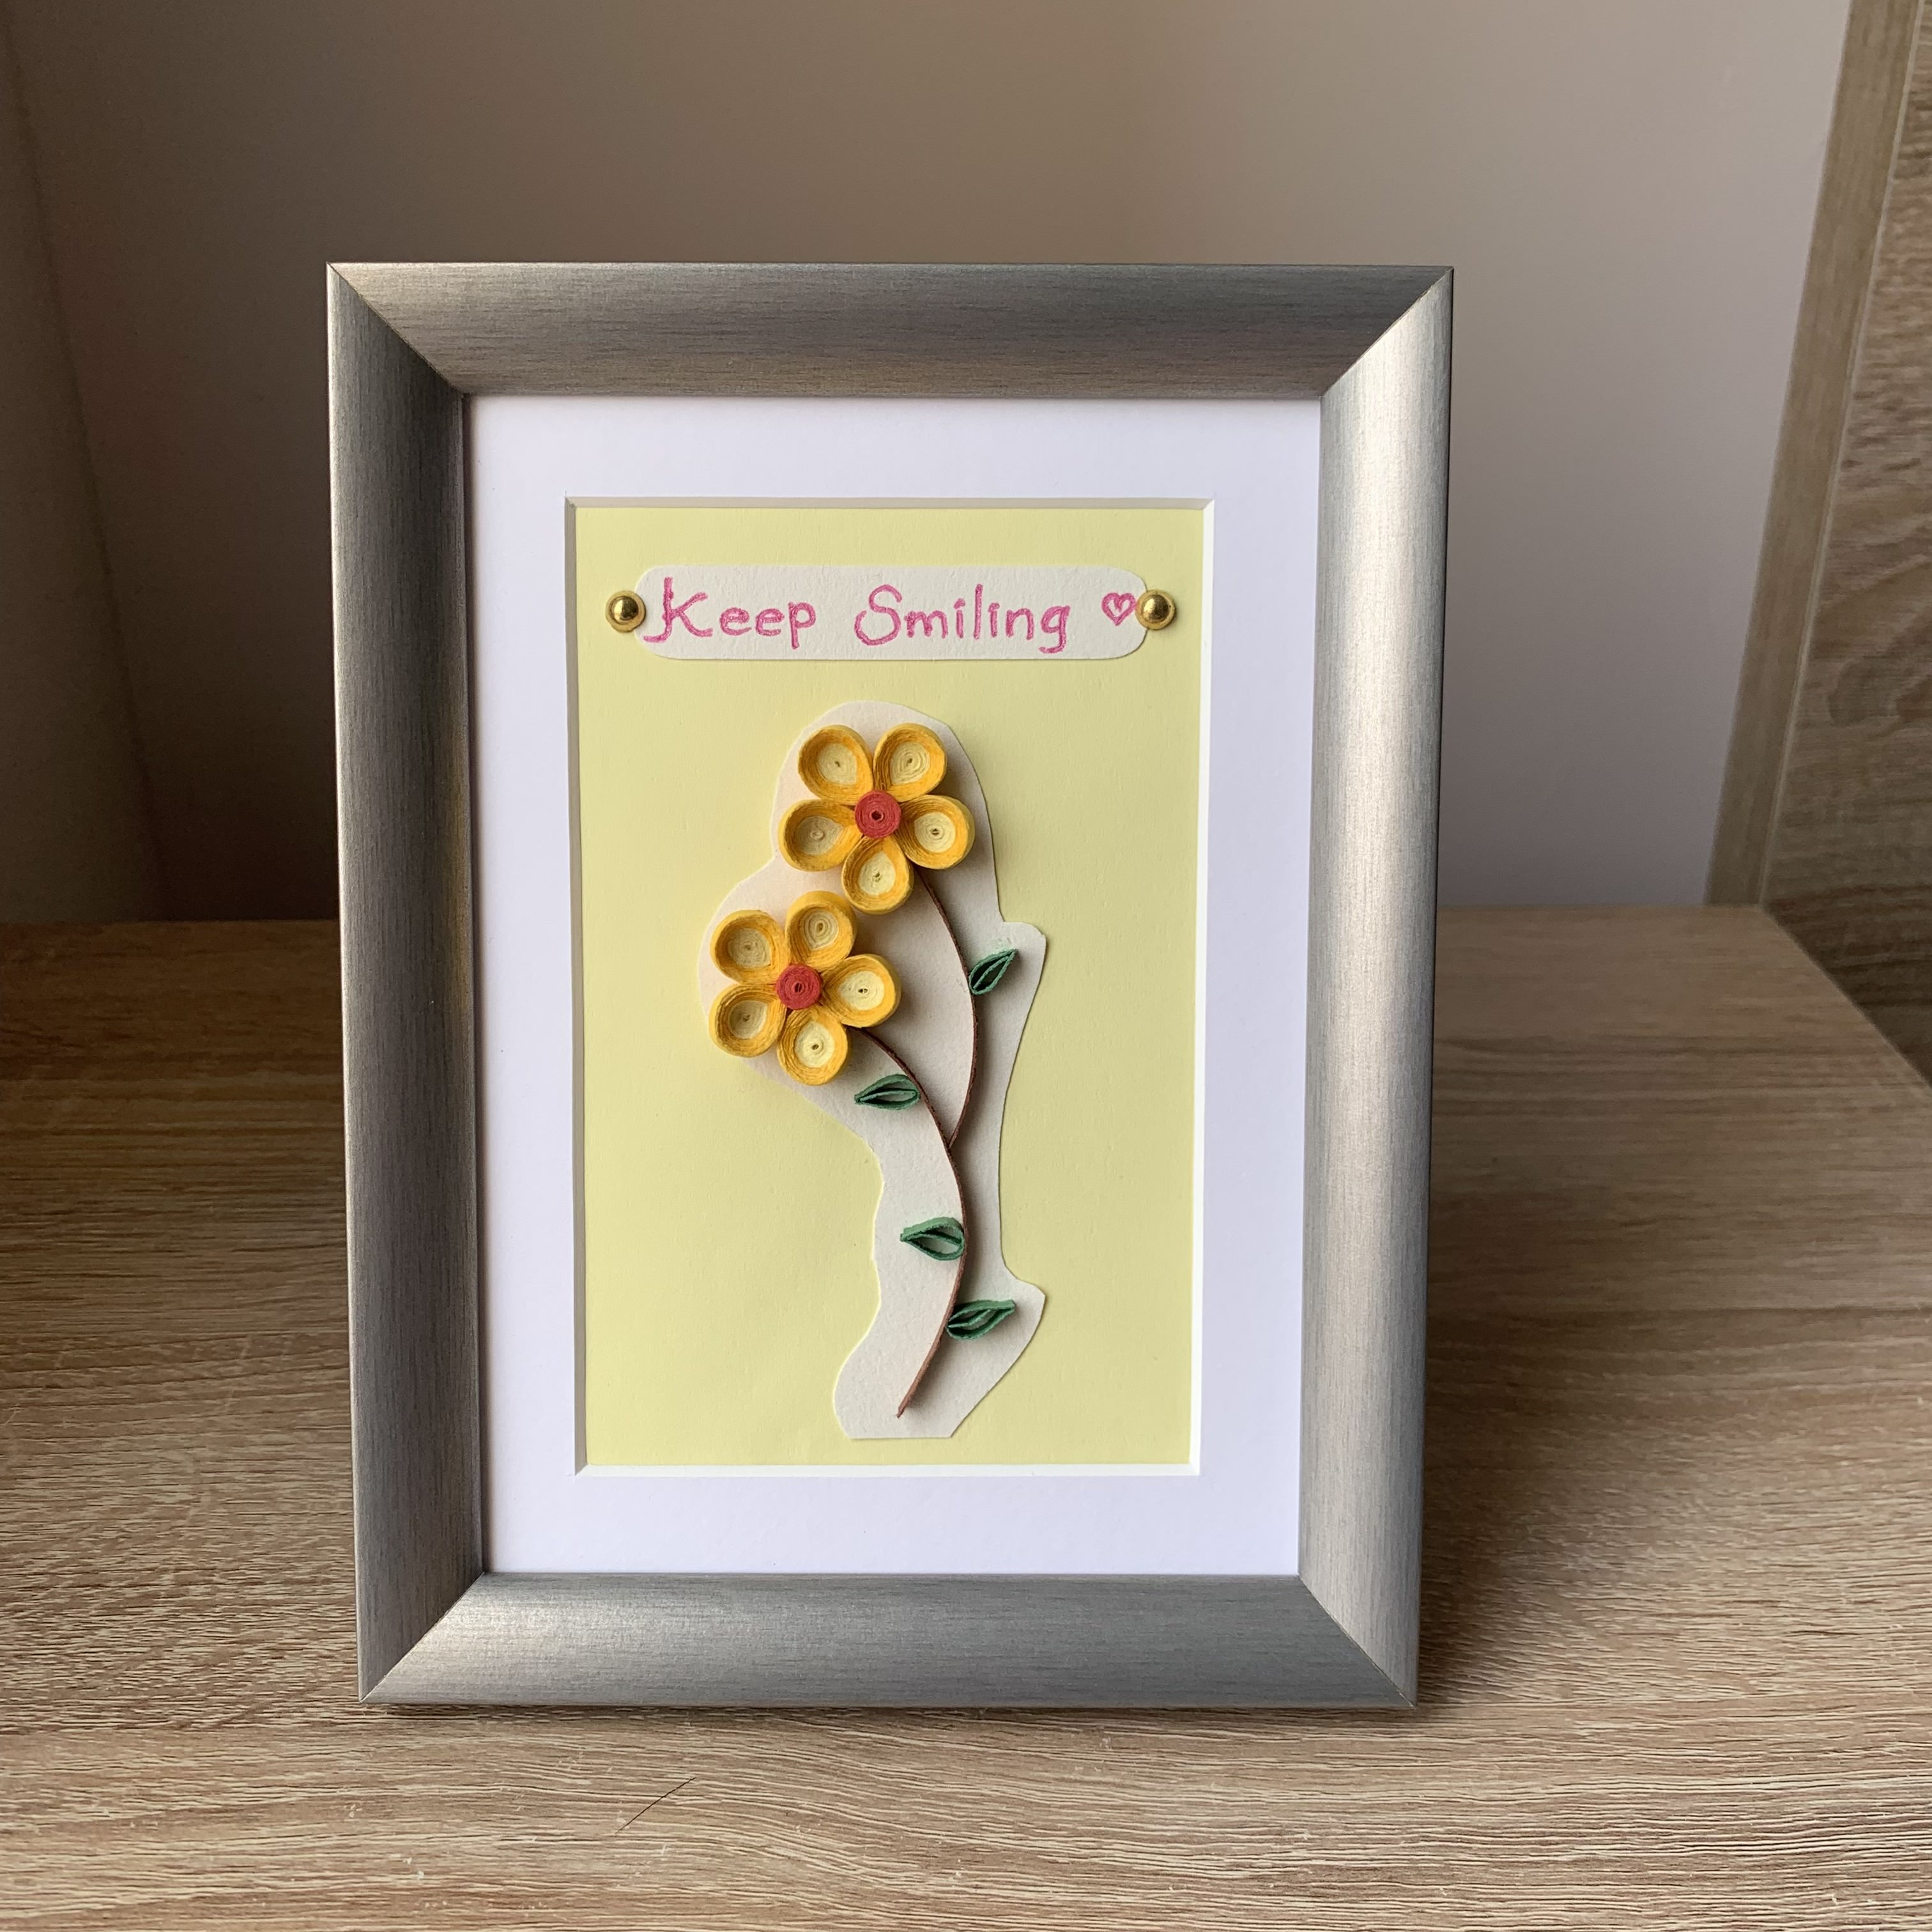 Paper Quilling Wall Art, Wish a friend - Greeting